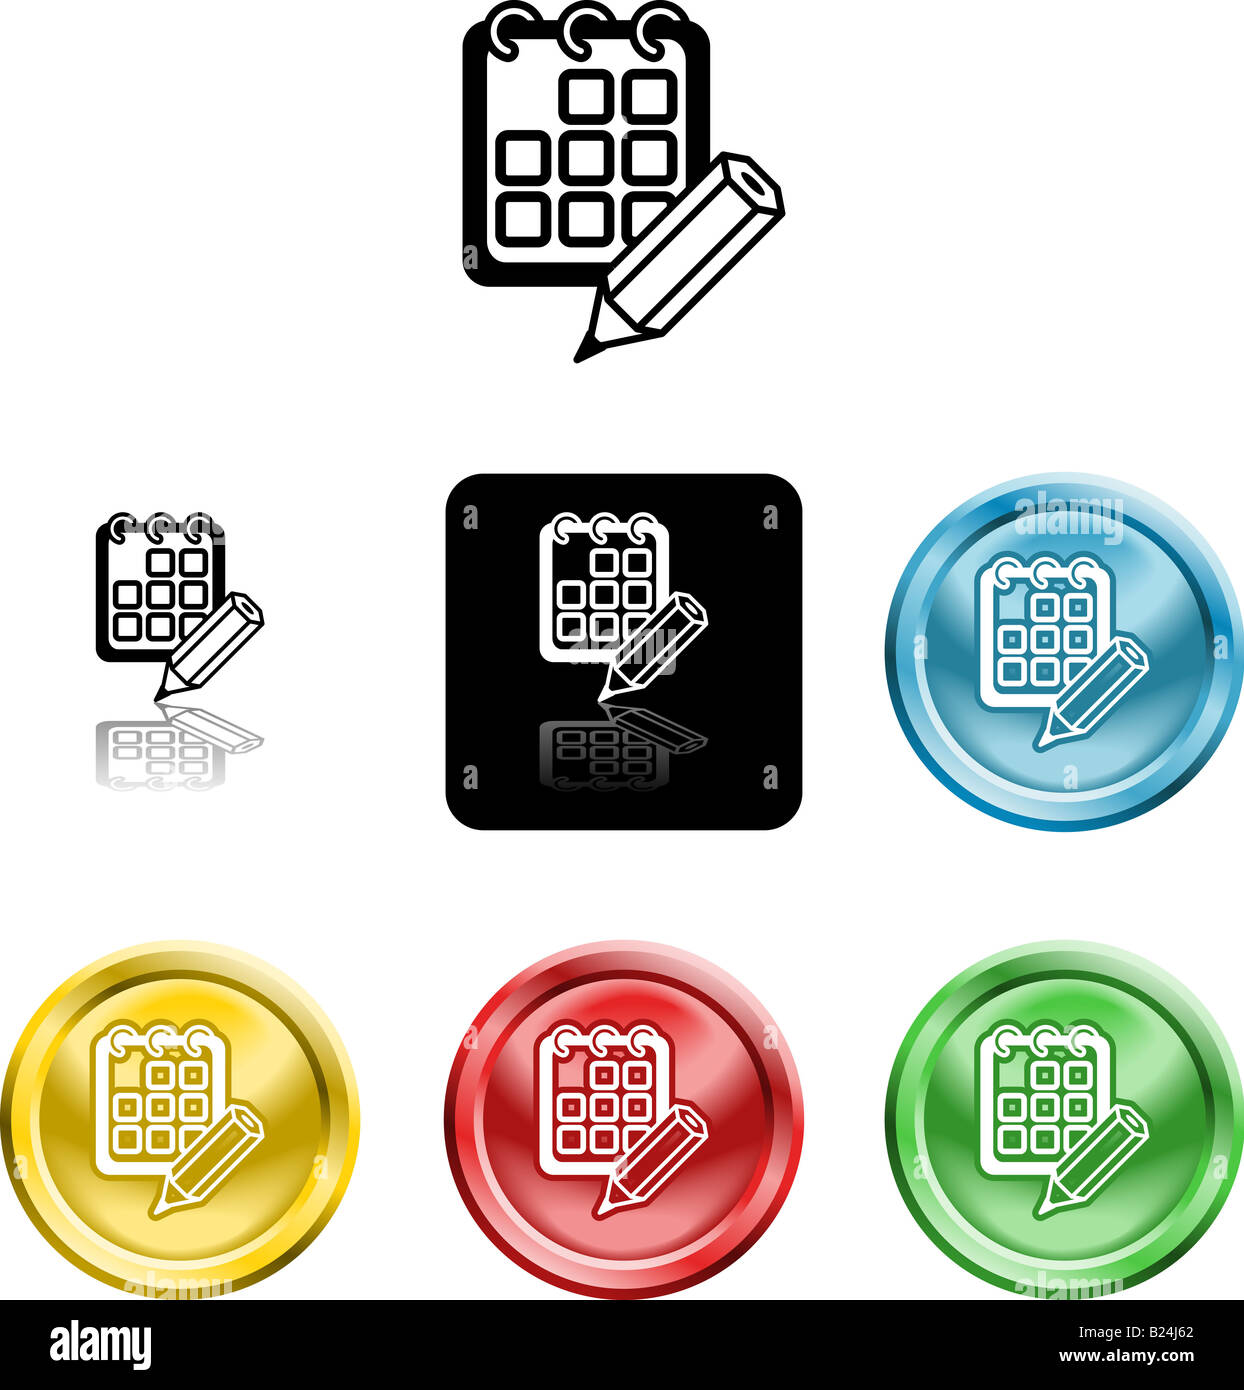 Several versions of an icon symbol of a stylised calendar or schedule and pencil - Stock Image